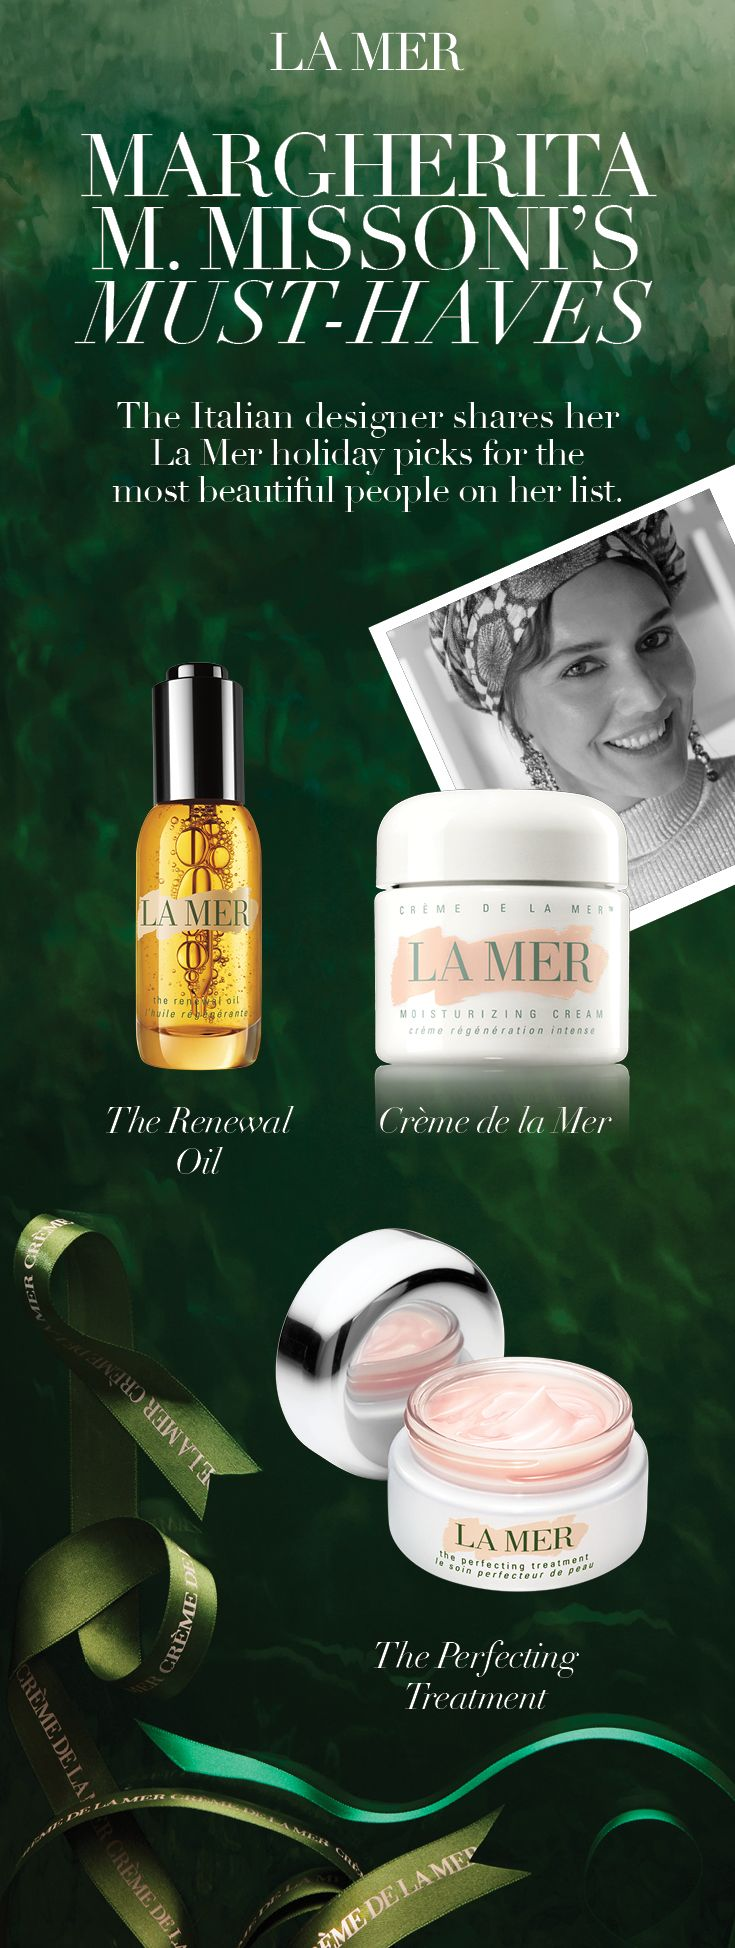 The Italian designer shares her La Mer holiday picks for the most beautiful people on her list. FOR MOM: Crème de La Mer. Legendary moisture for a legendary love. MY SISTER: The Perfecting Treatment. A luminous, soft-focus finish. MY HUSBAND: The Renewal Oil. Endless rituals to transform.